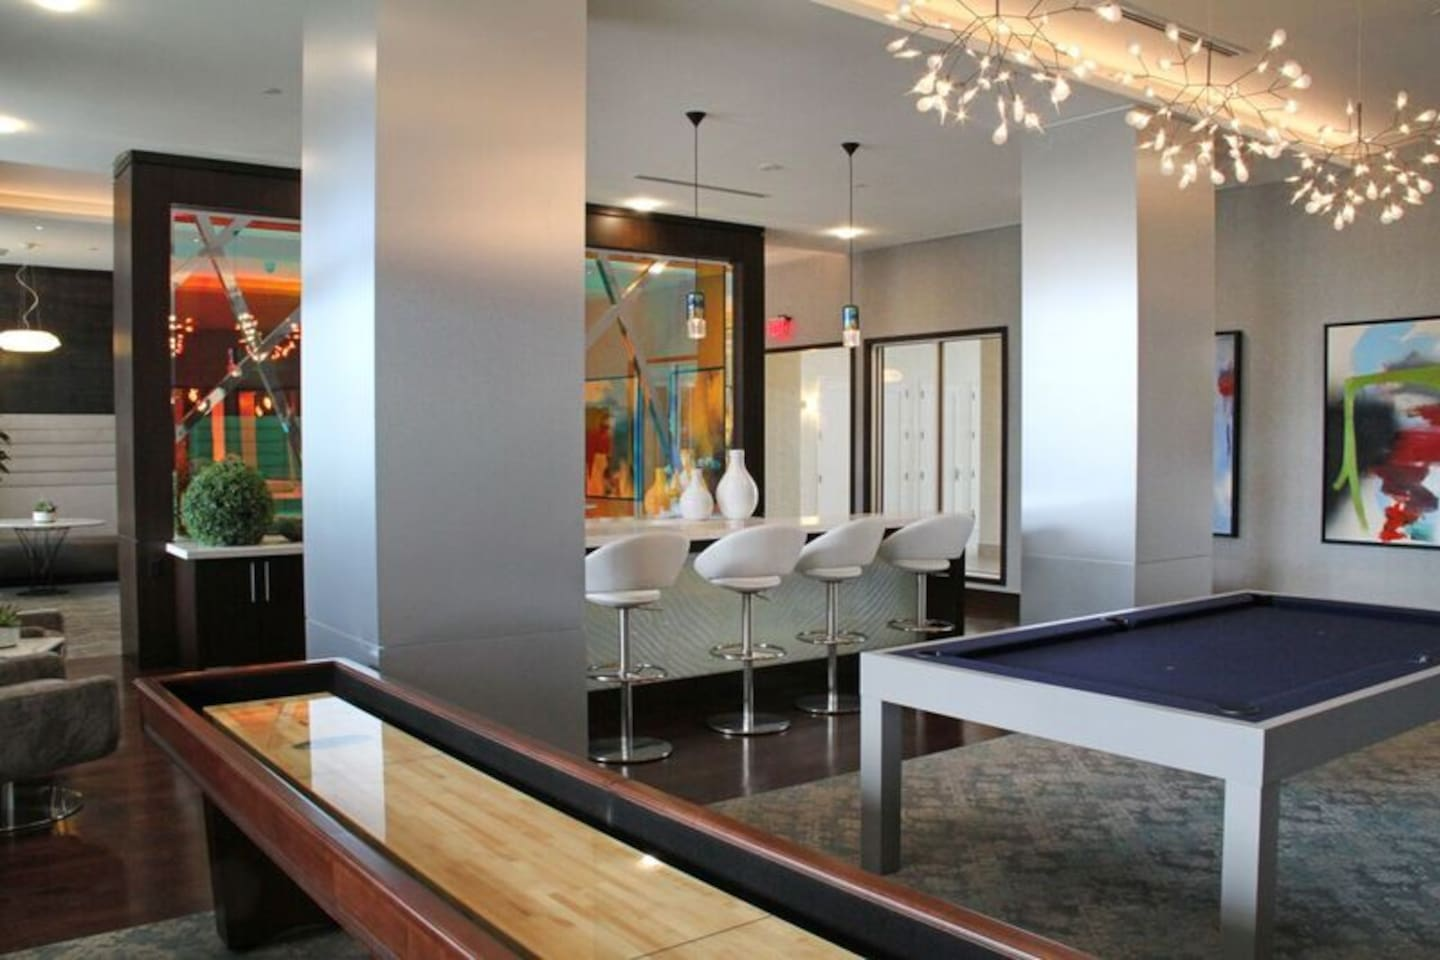 Billiards in our community room